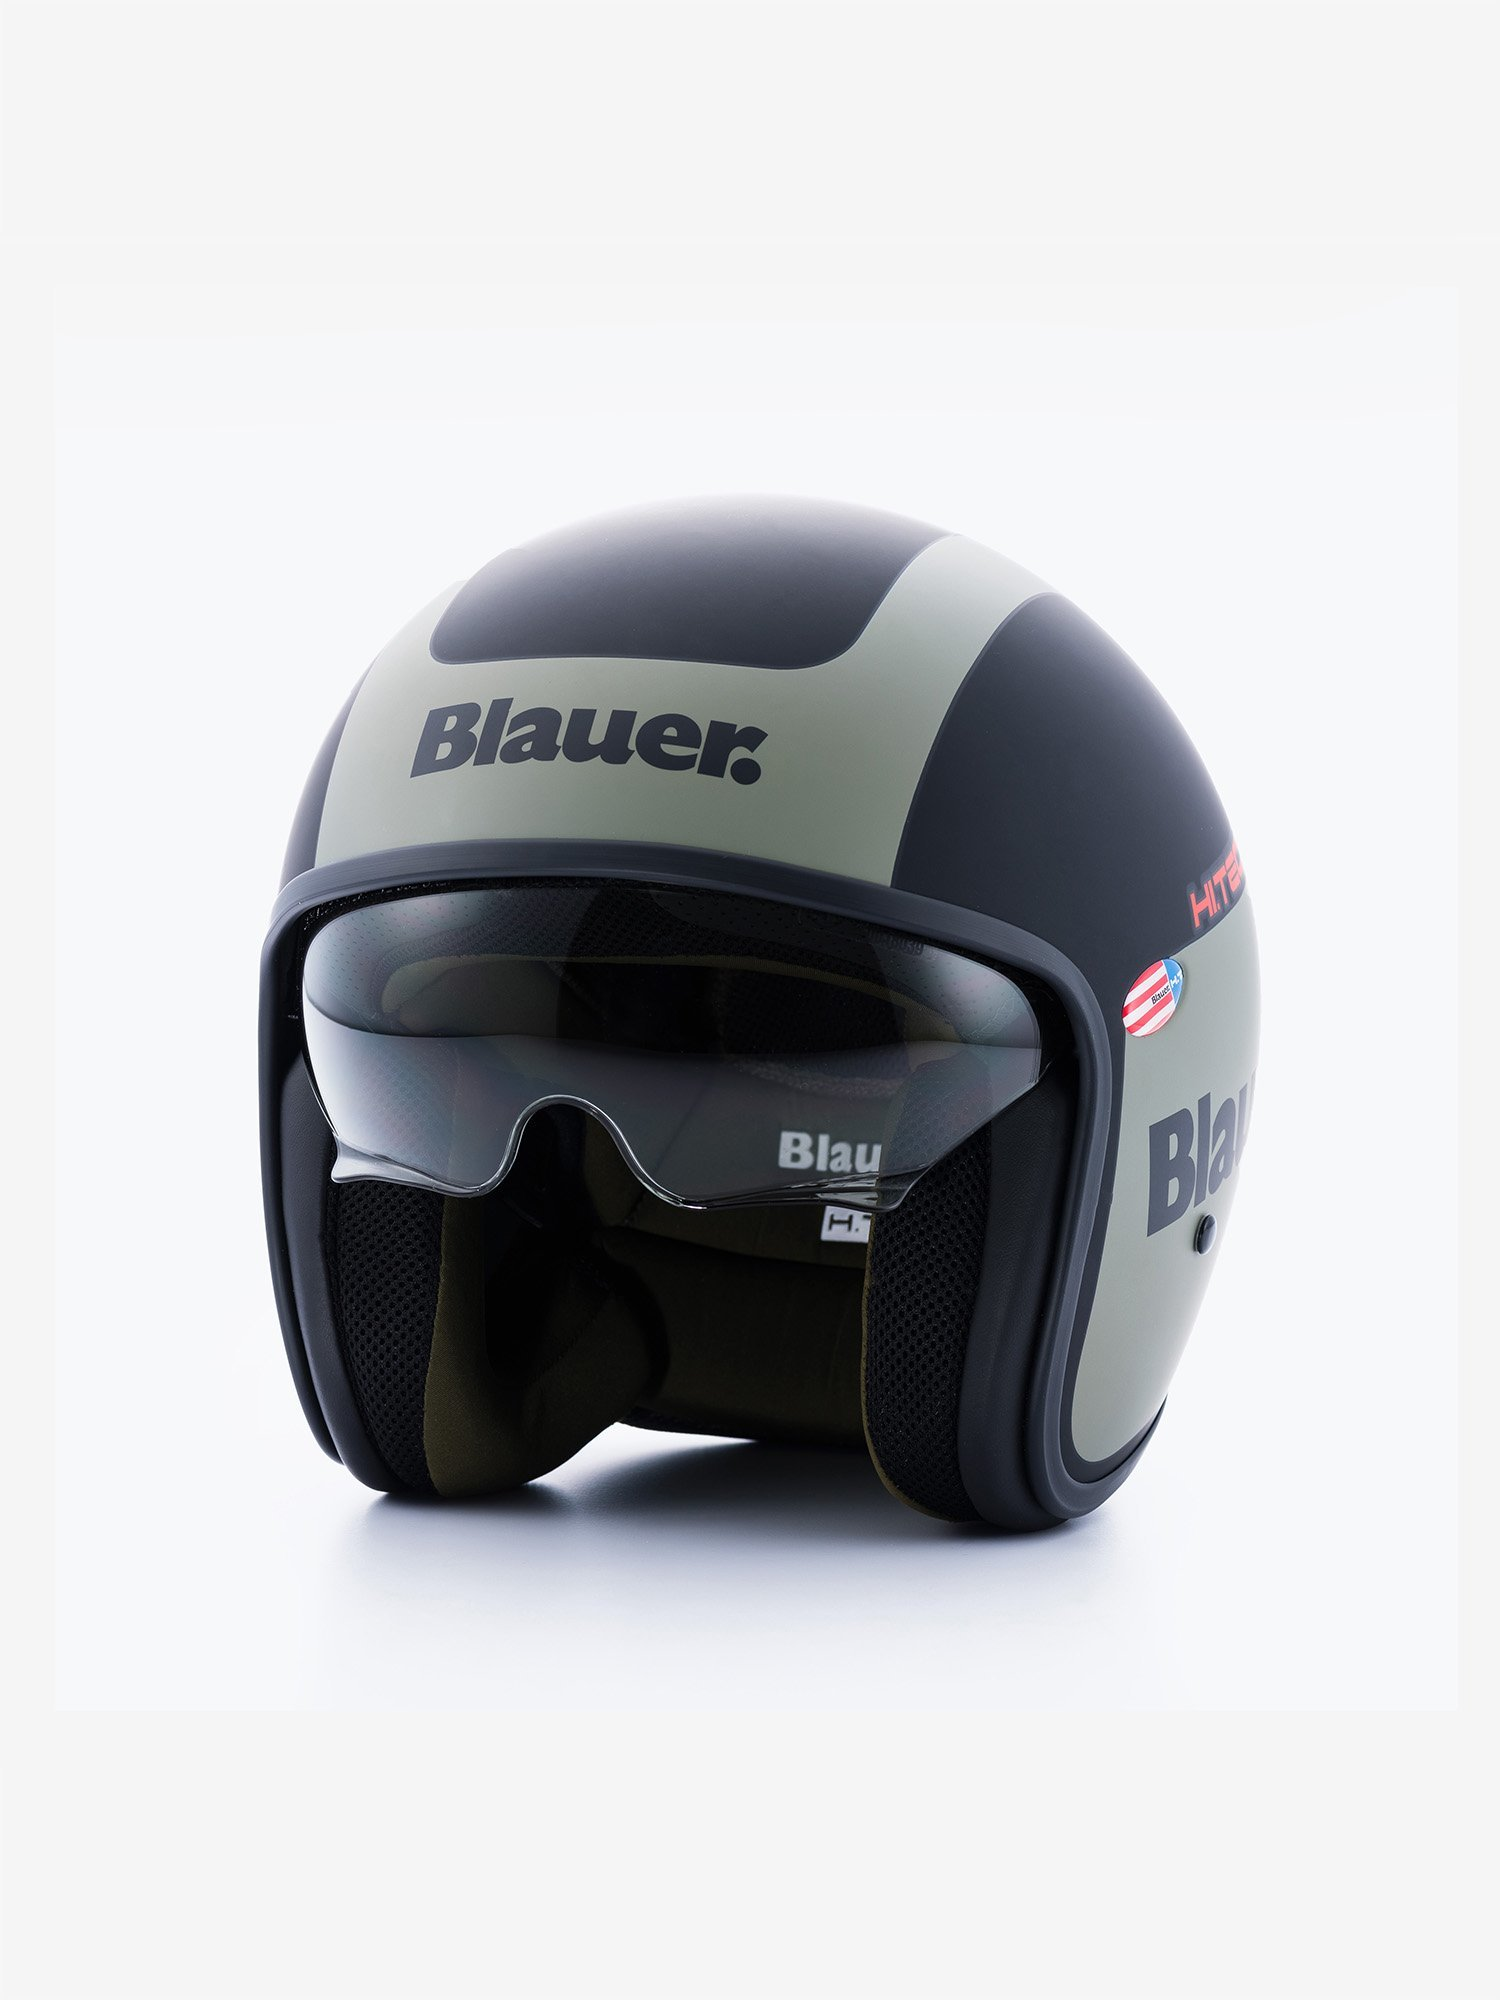 Blauer - PILOT 1.1 MATT DEUX TONS - Black Matt / Green In. Green - Blauer